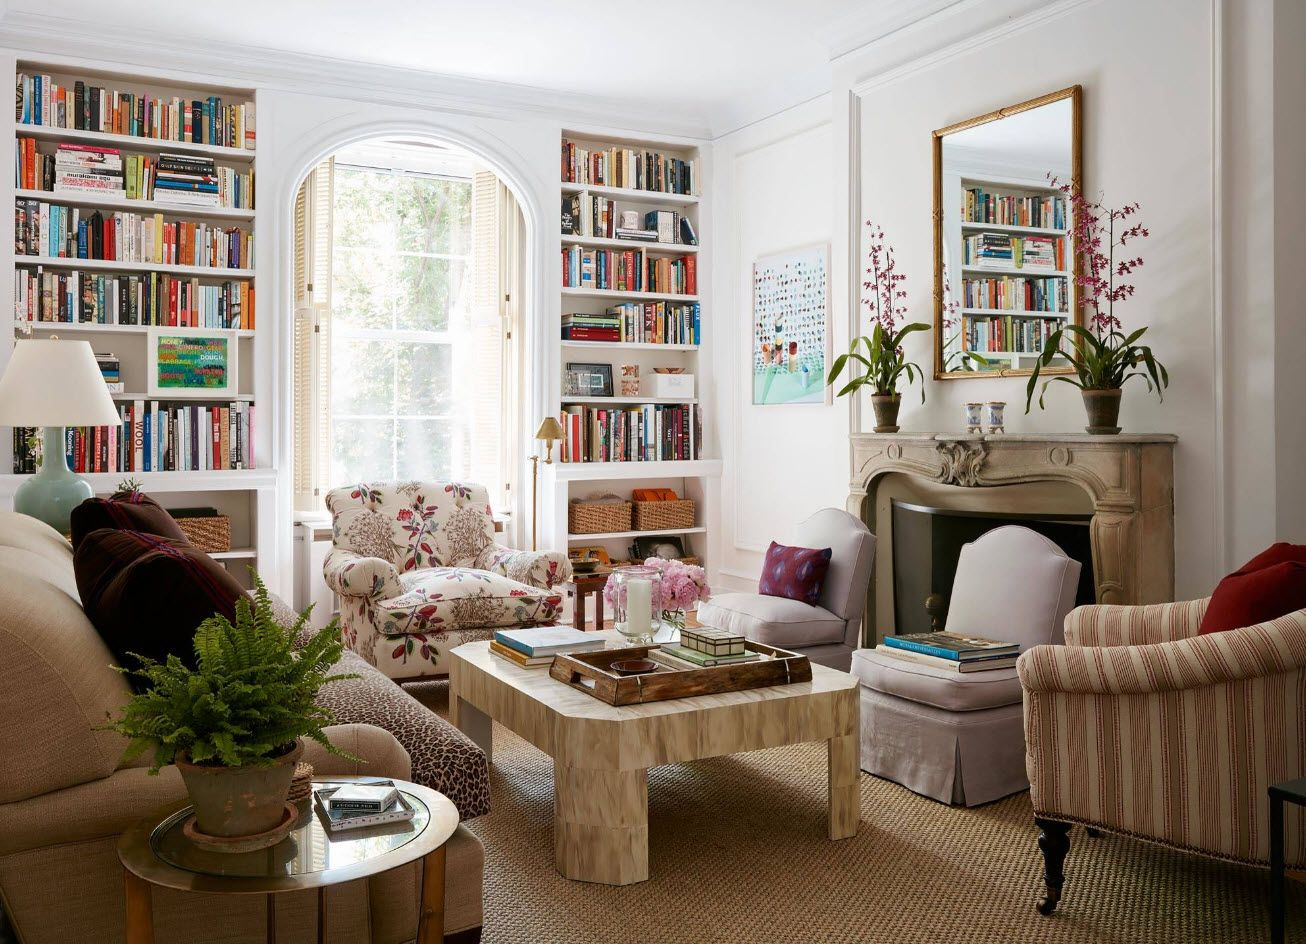 Real library at the sunlit living room at the private house